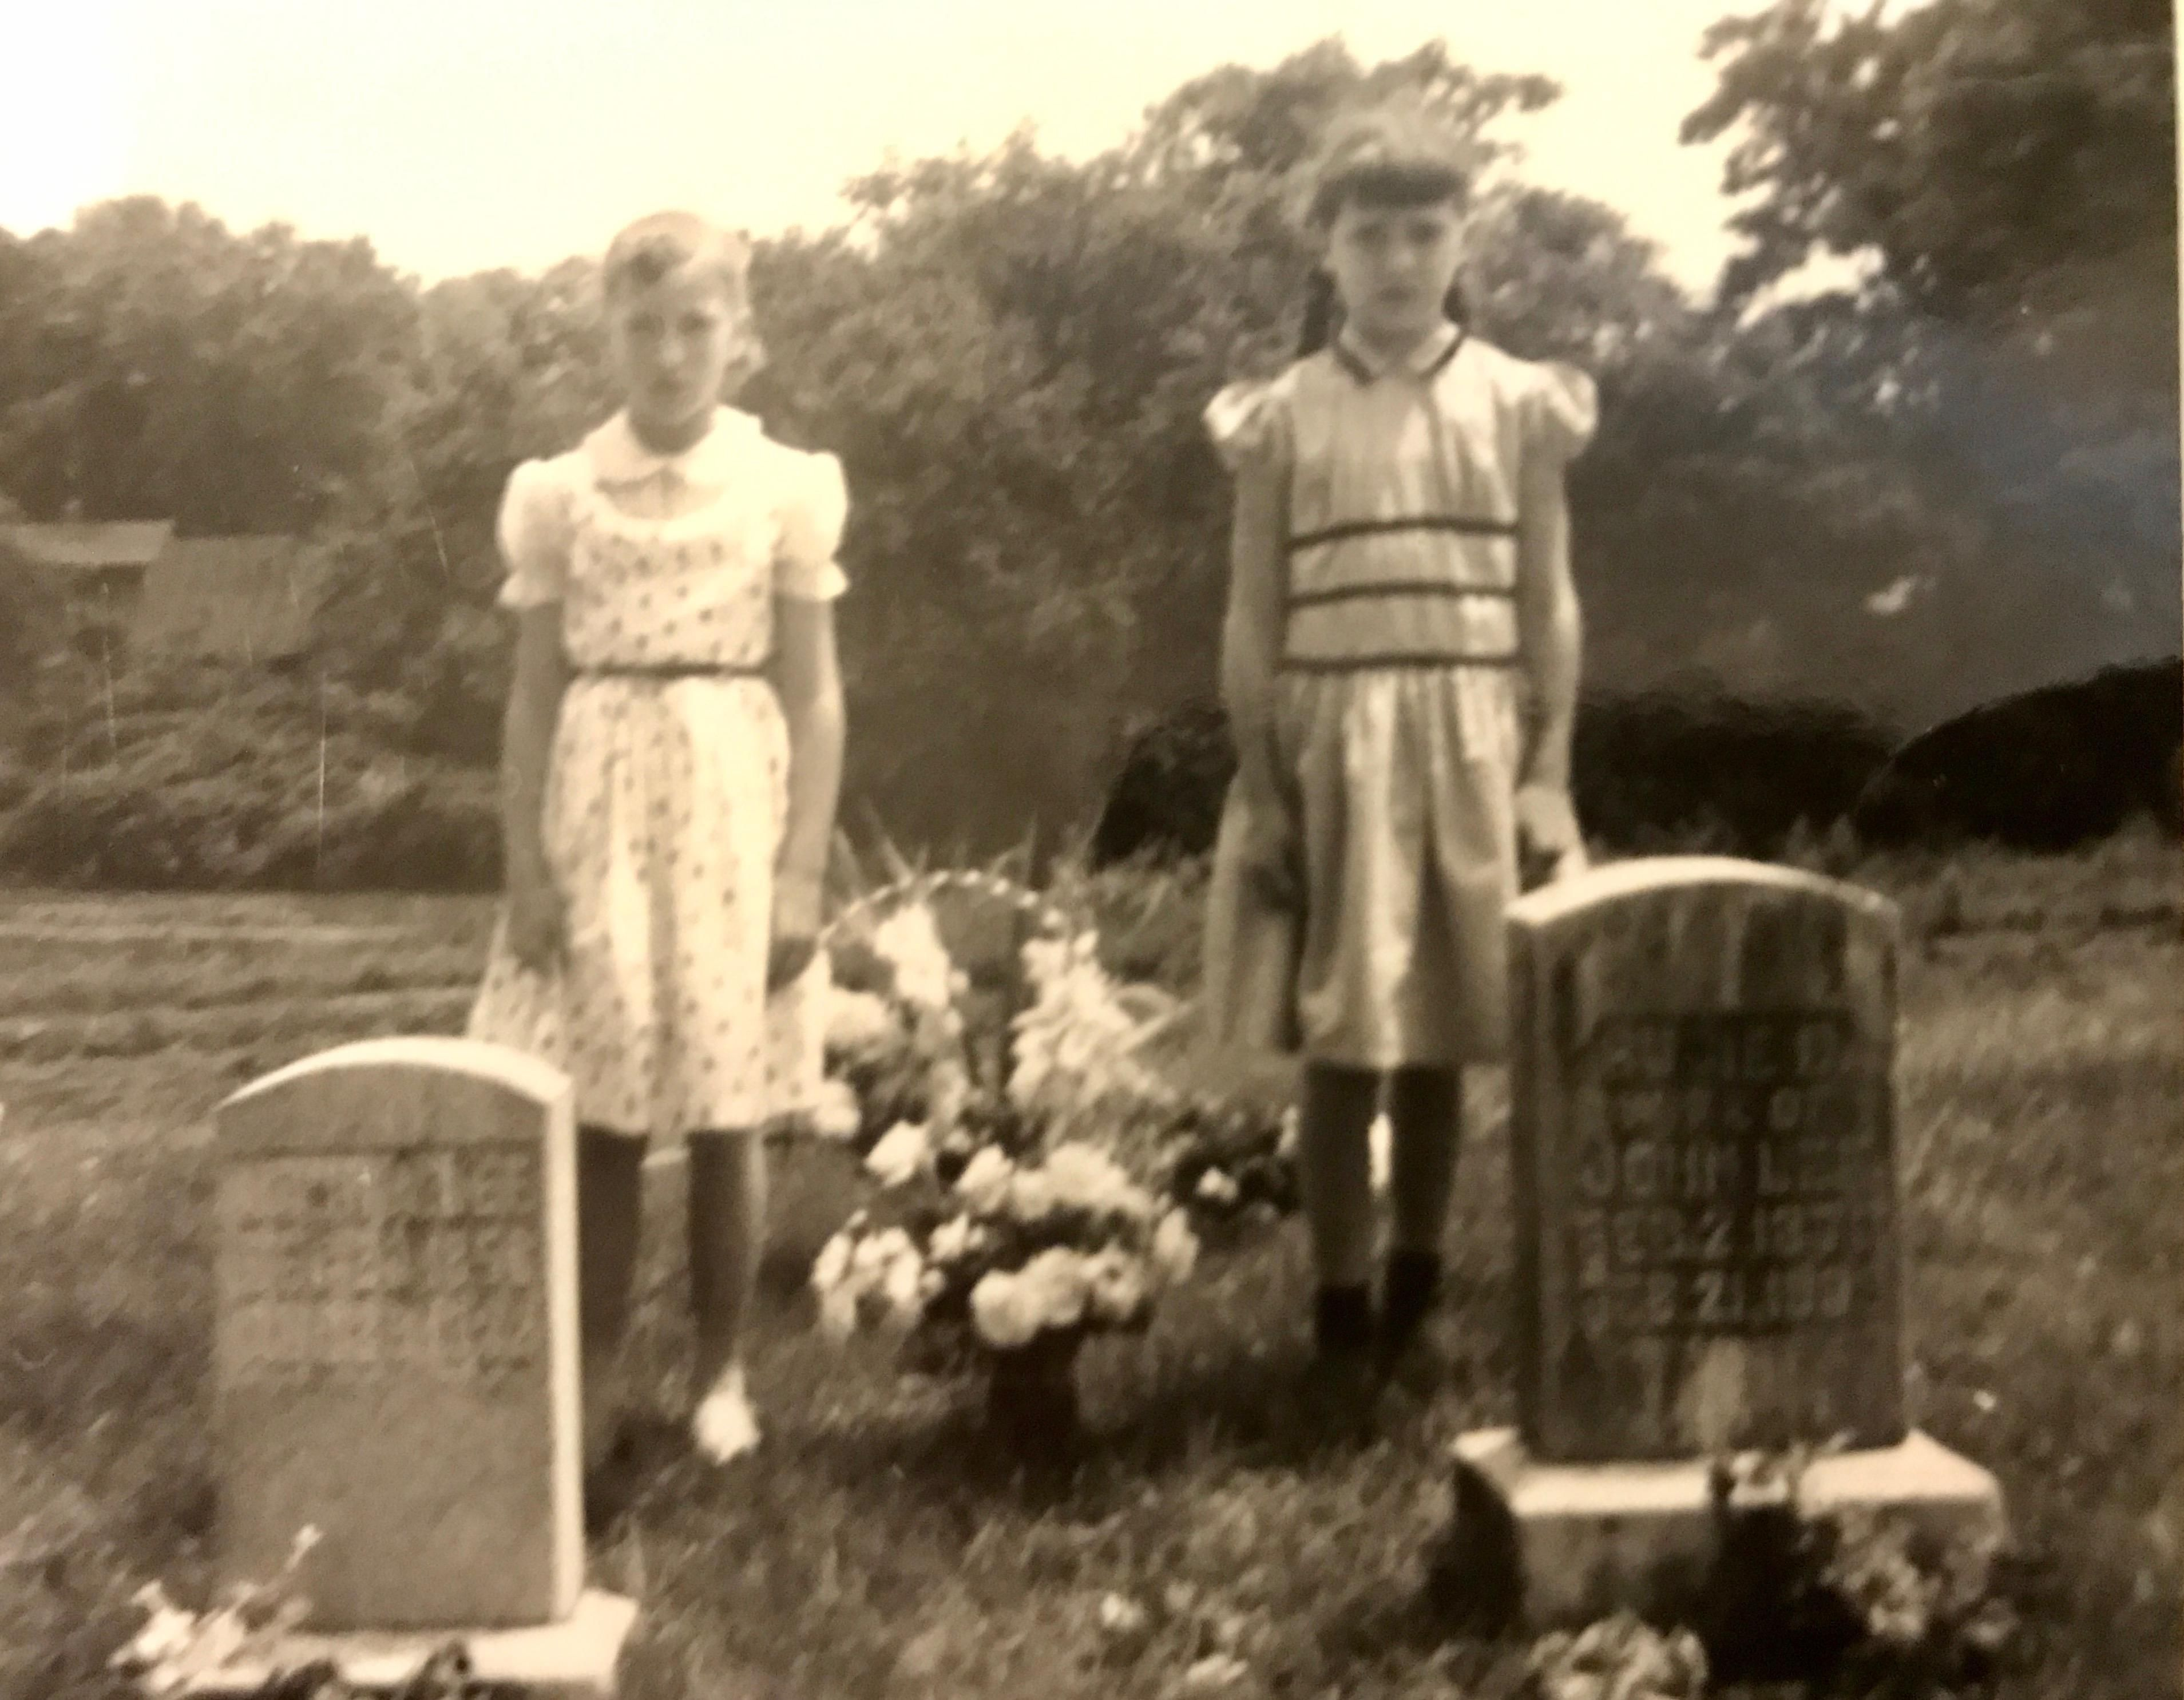 Creepy Graveyard Photo Of My Mom And Her Sister From